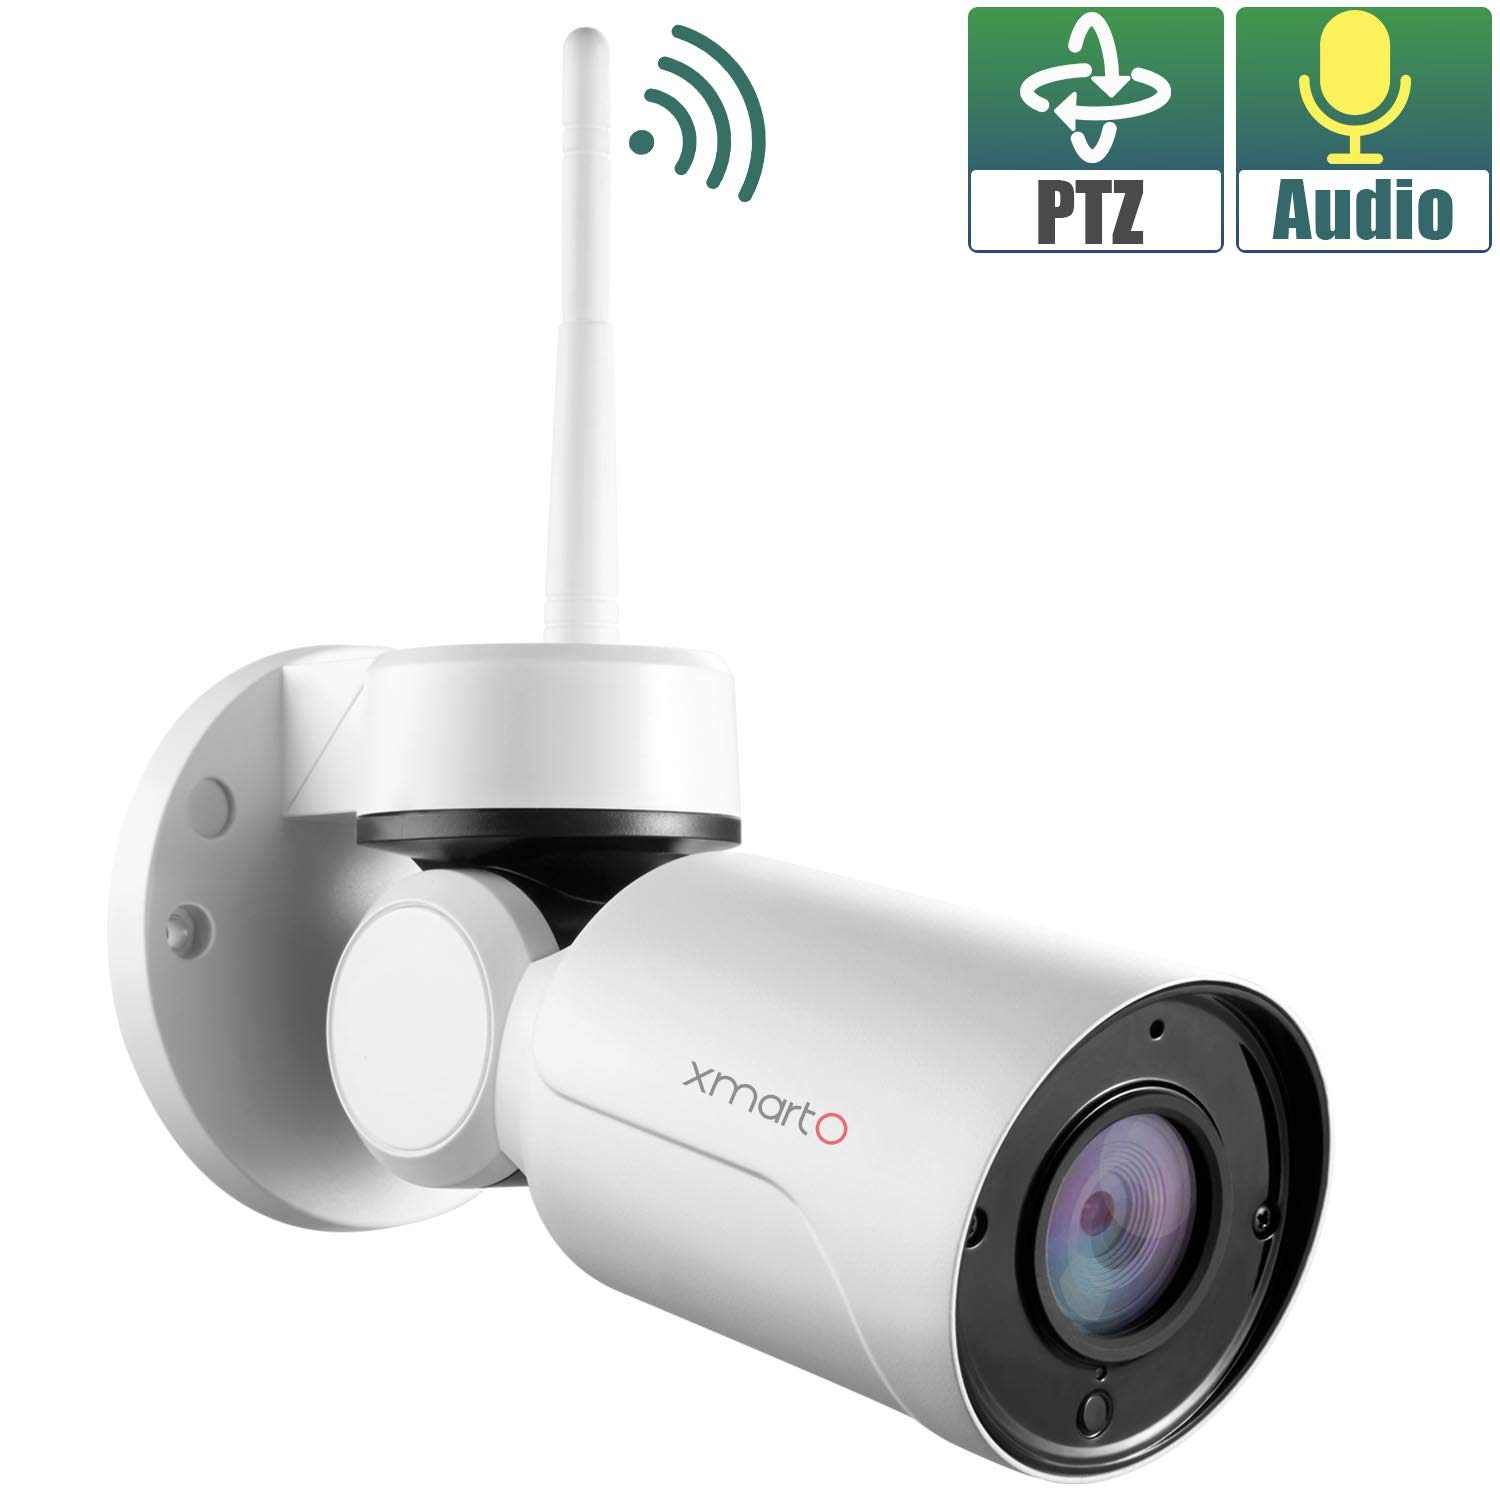 xmartO WP2024 [Pan Tilt & Built-in Audio] Add-on 1080p HD Wireless Pan Tilt Outdoor Security Camera 4mm Lens, 180° Pan and 55° Tilt Remote Control, 4X Digital Zoom and 80' IR Night Vision